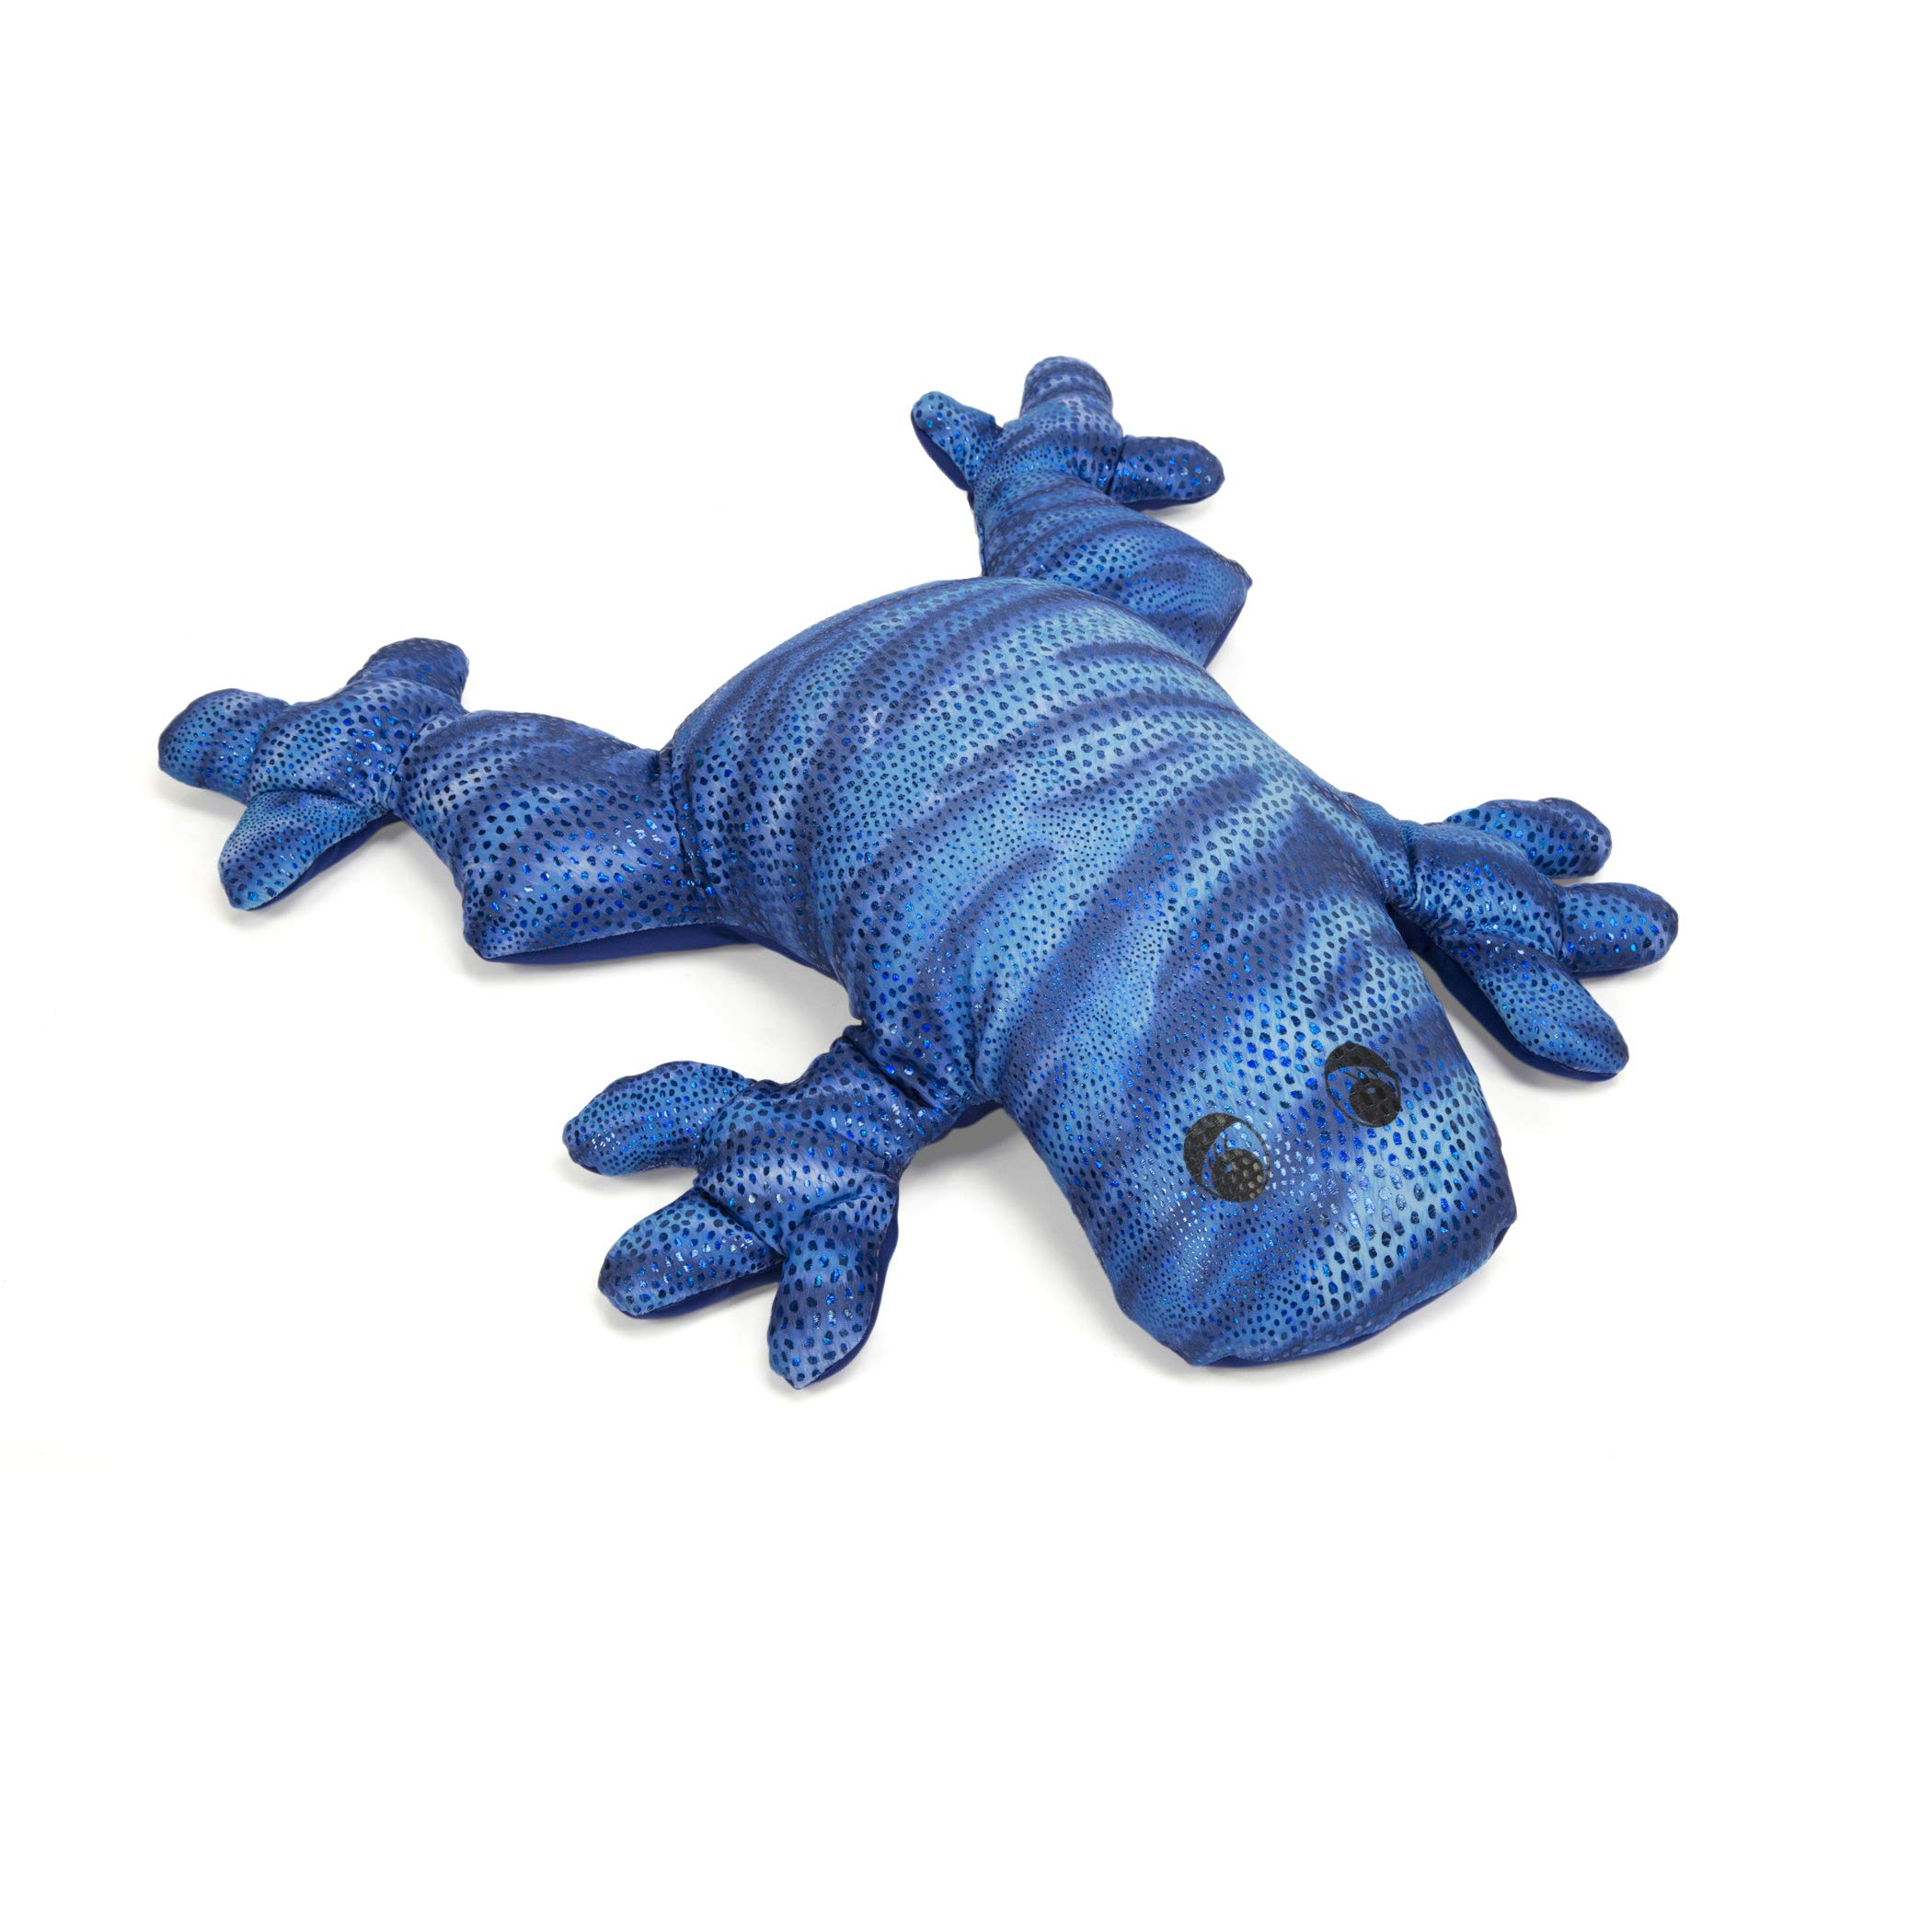 Manimo Frog Weighted Animal, 2.5kg, Blue